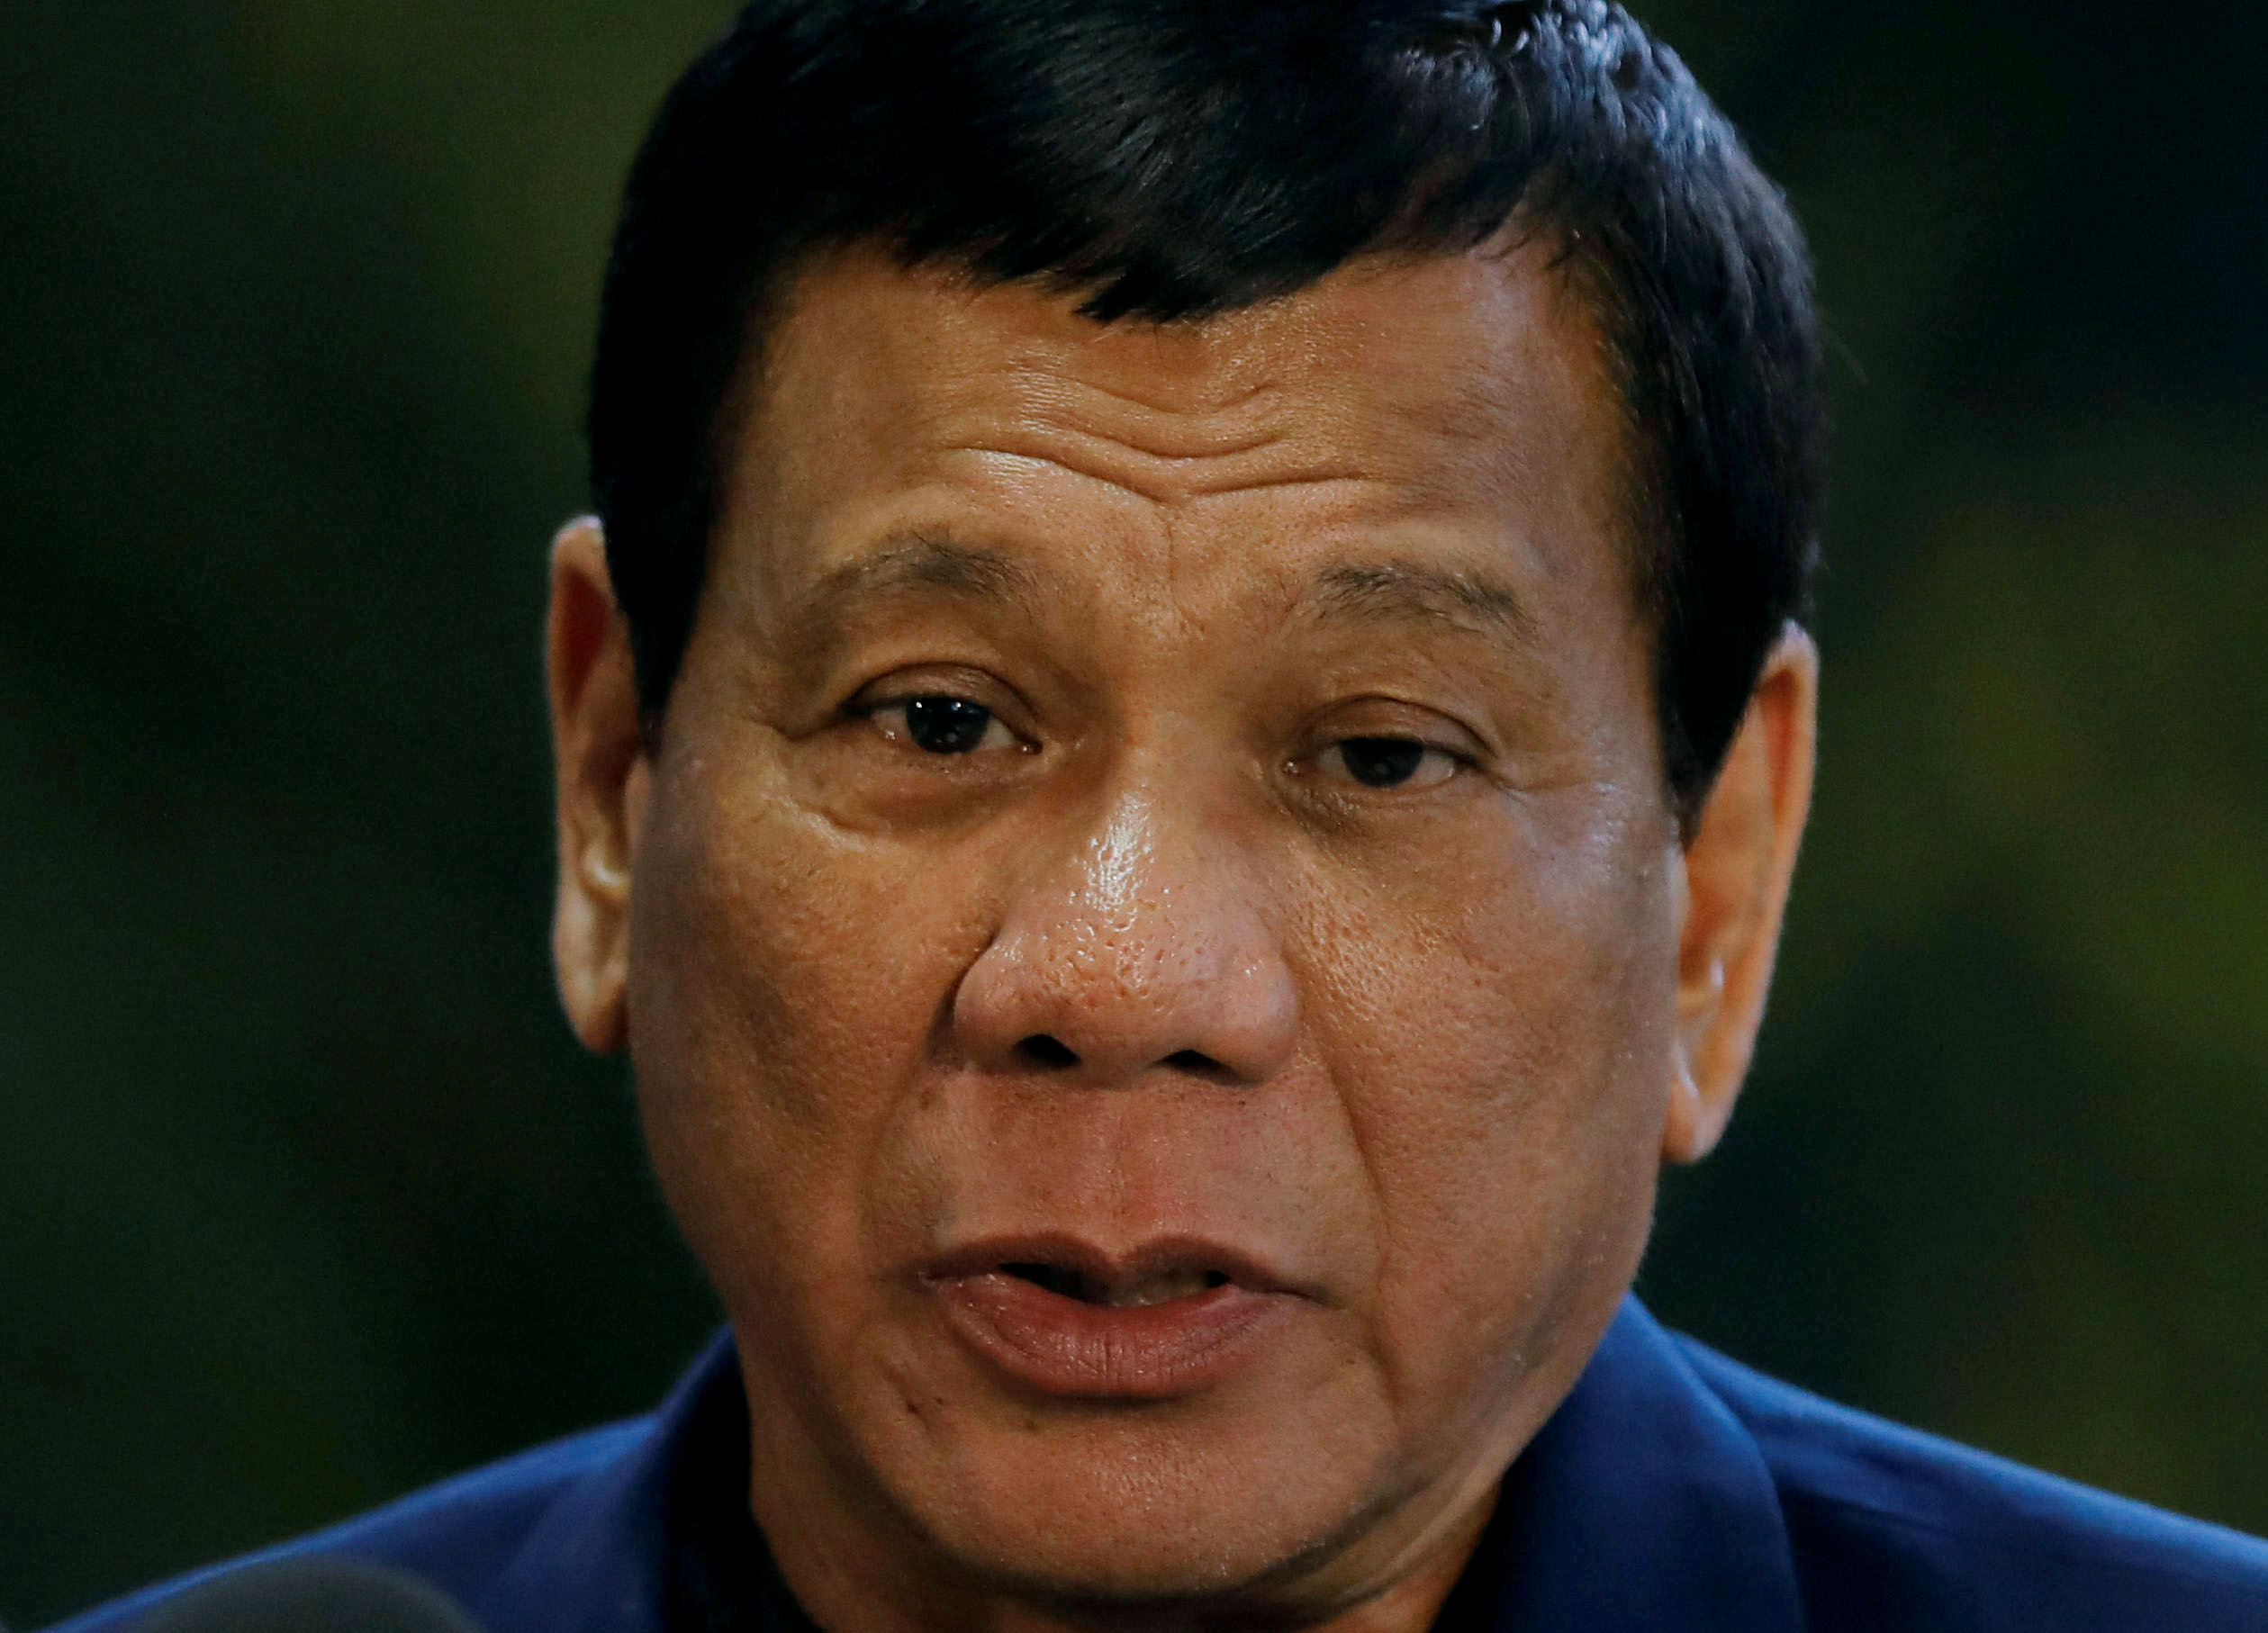 Philippine president to ask Congress for 20,000 new troops to fight extremists